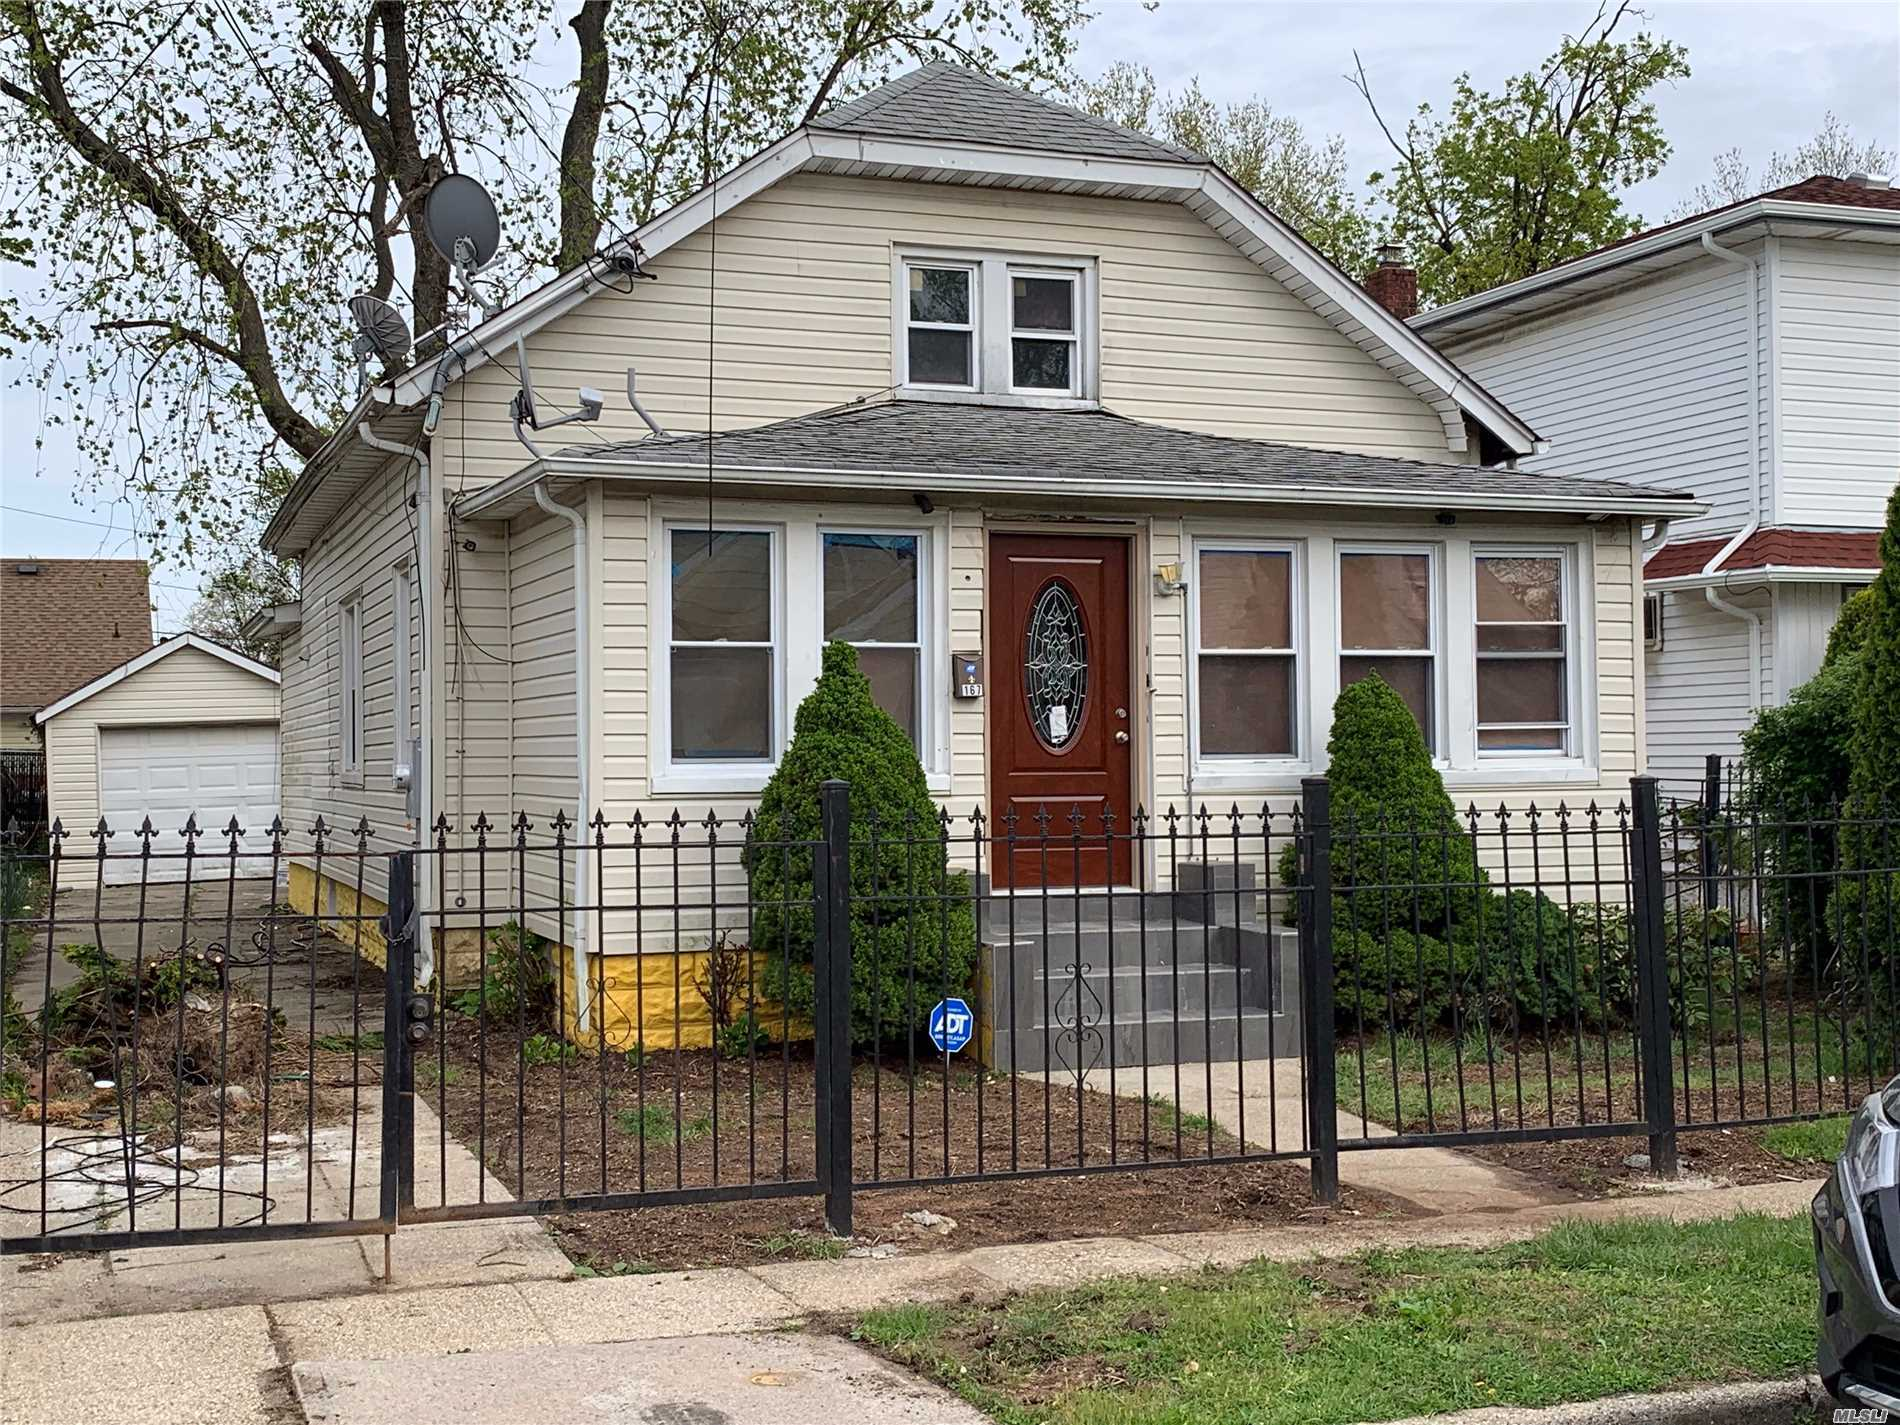 This is a fully renovated home with very nice sized private rooms with wood floors, New heating system, ultra modern granite styled eat in kitchen with top of line SS appliances. If you missed the last one, don't miss this one.